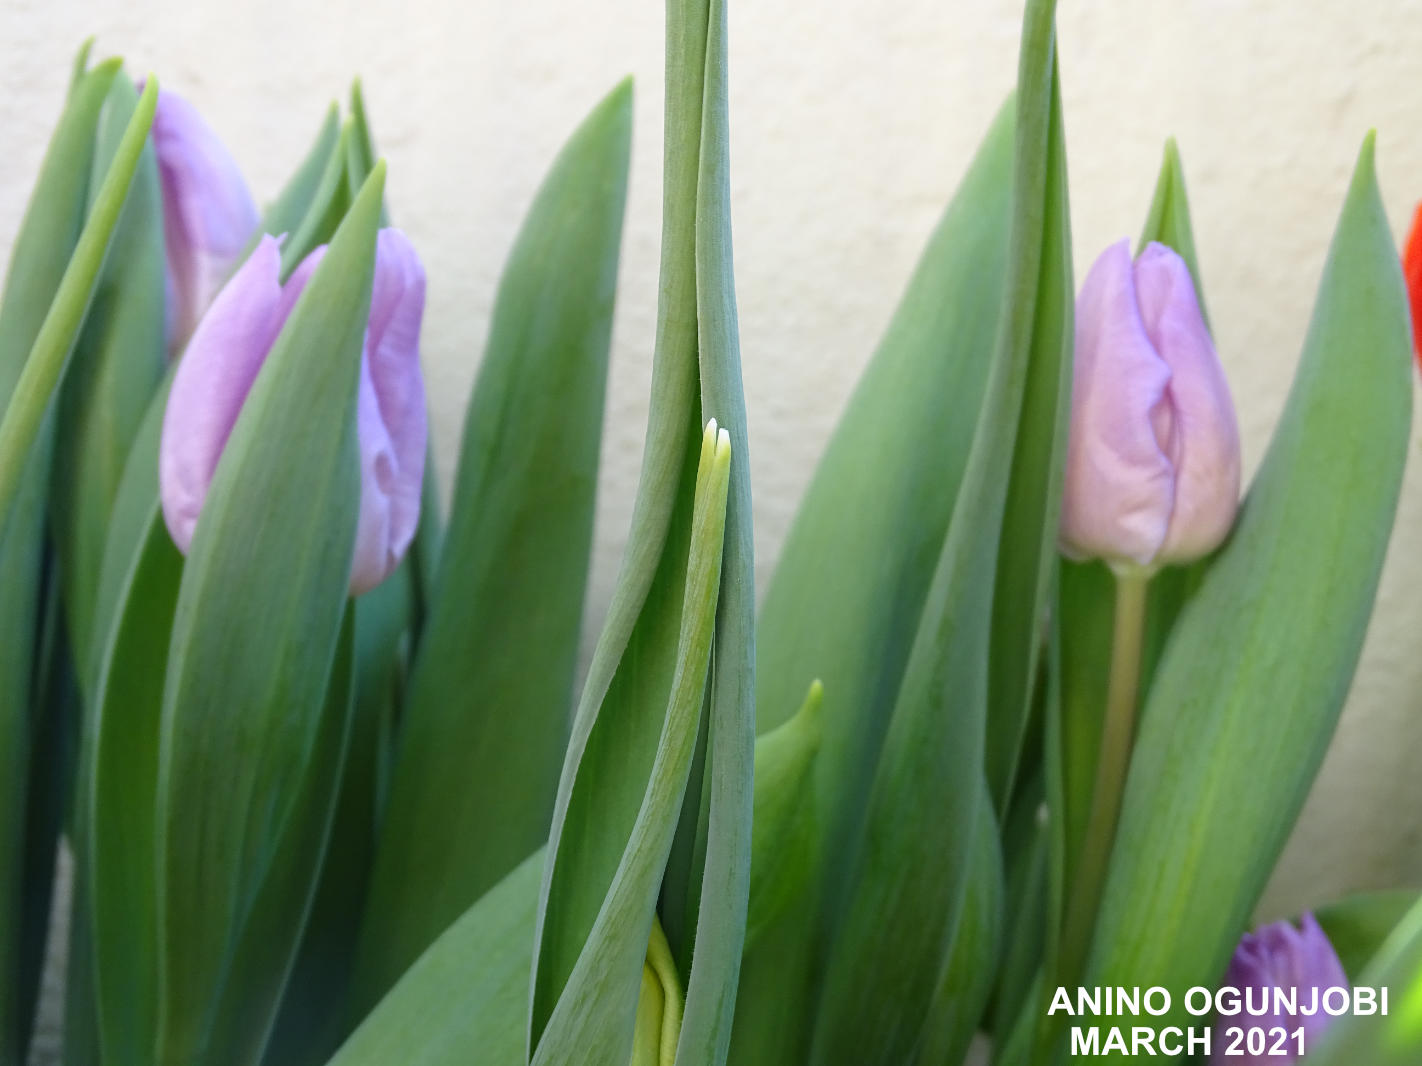 Blooms-of-the-Tulips-Tulipa-Alibi-by-Anino-and-Crafters-TV